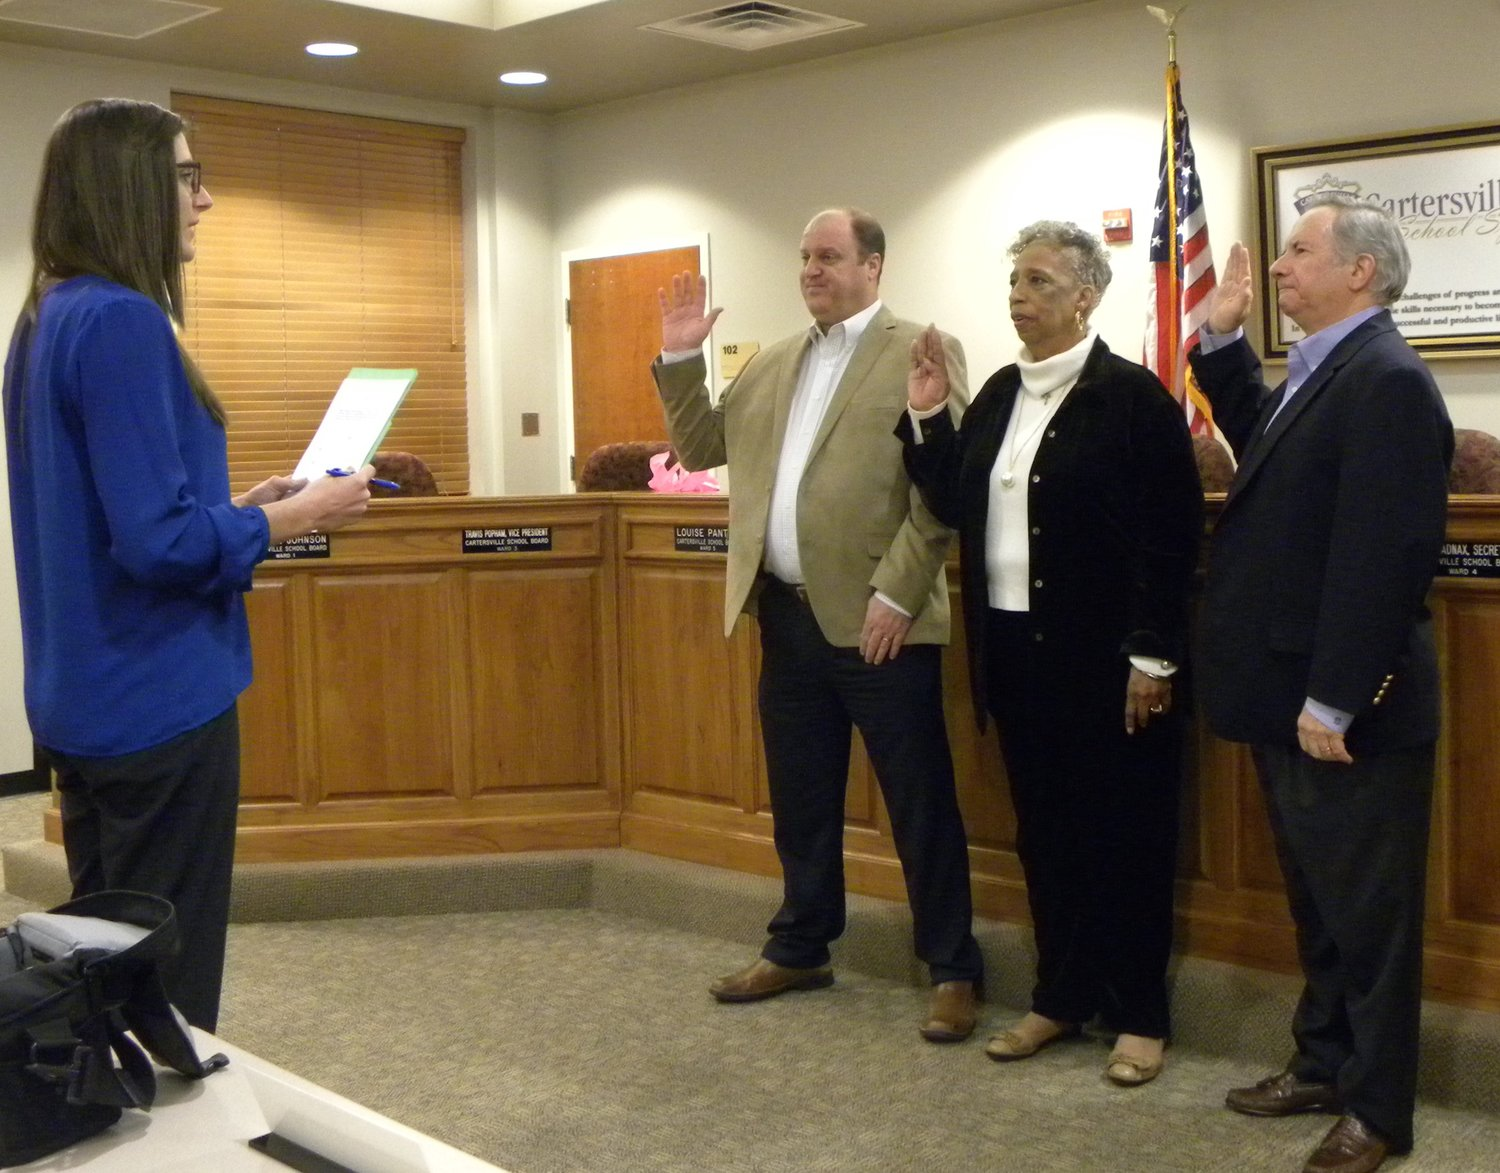 Cartersville City School Board members, from left, Travis Popham, Pat Broadnax and Tim Chason begin their new terms by taking the oath of office administered by Cartersville City Clerk Meredith Ulmer at Thursday night's work session.